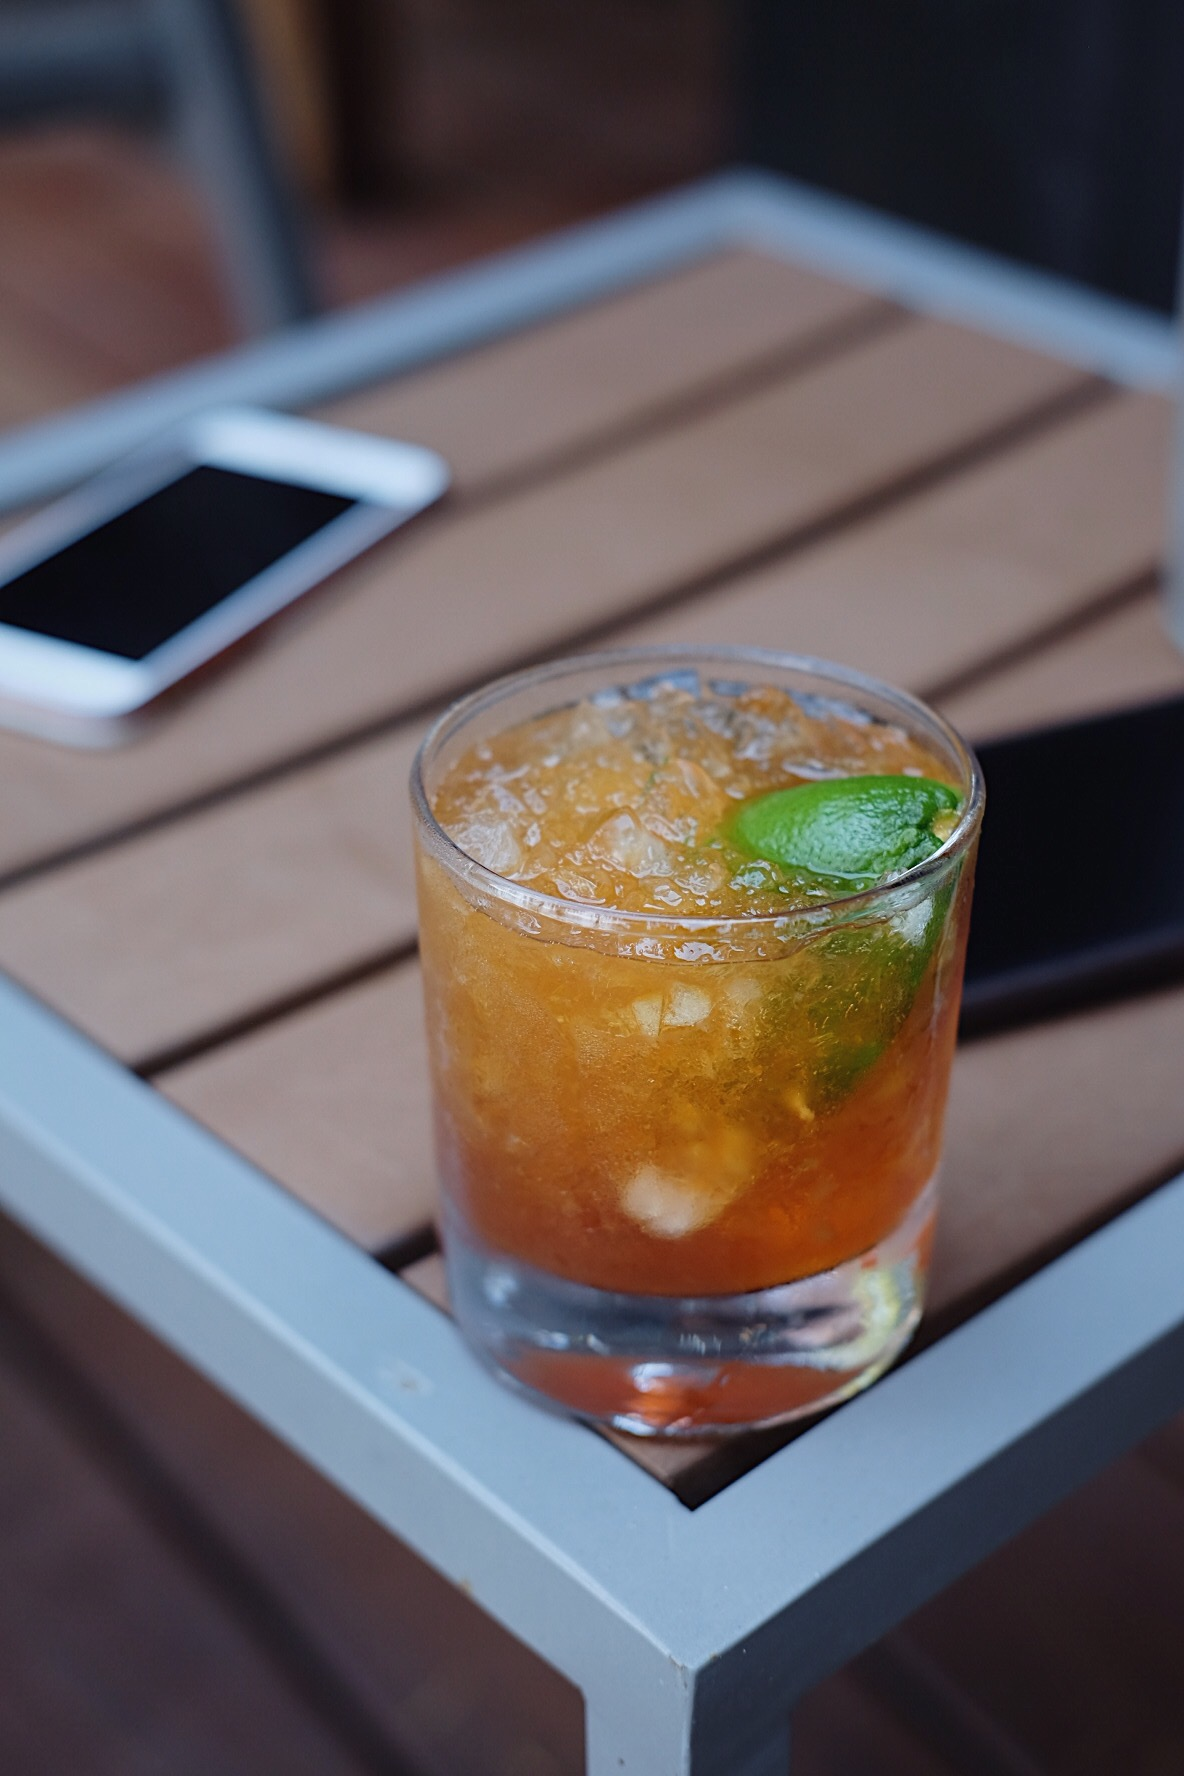 ingredients: - 2 oz Barbados rum1/2 oz Falernum2 dashes aromatic bitterssqueeze of lime